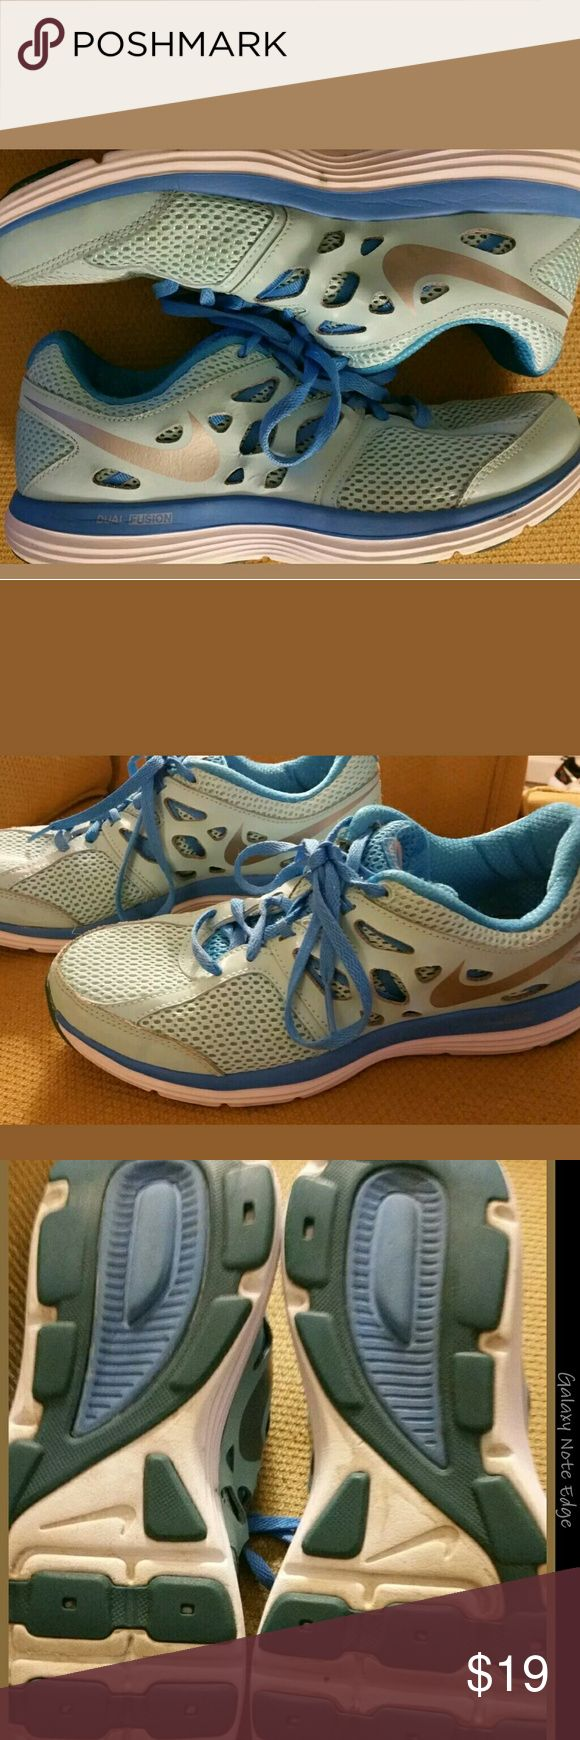 Nike Dual Fusion Lite Running Shoes 599560 Size 9 Women's Nike Dual Fusion Lite Running Shoes Size 9 599560-414 Glacier Blue Ice Nike Shoes Athletic Shoes